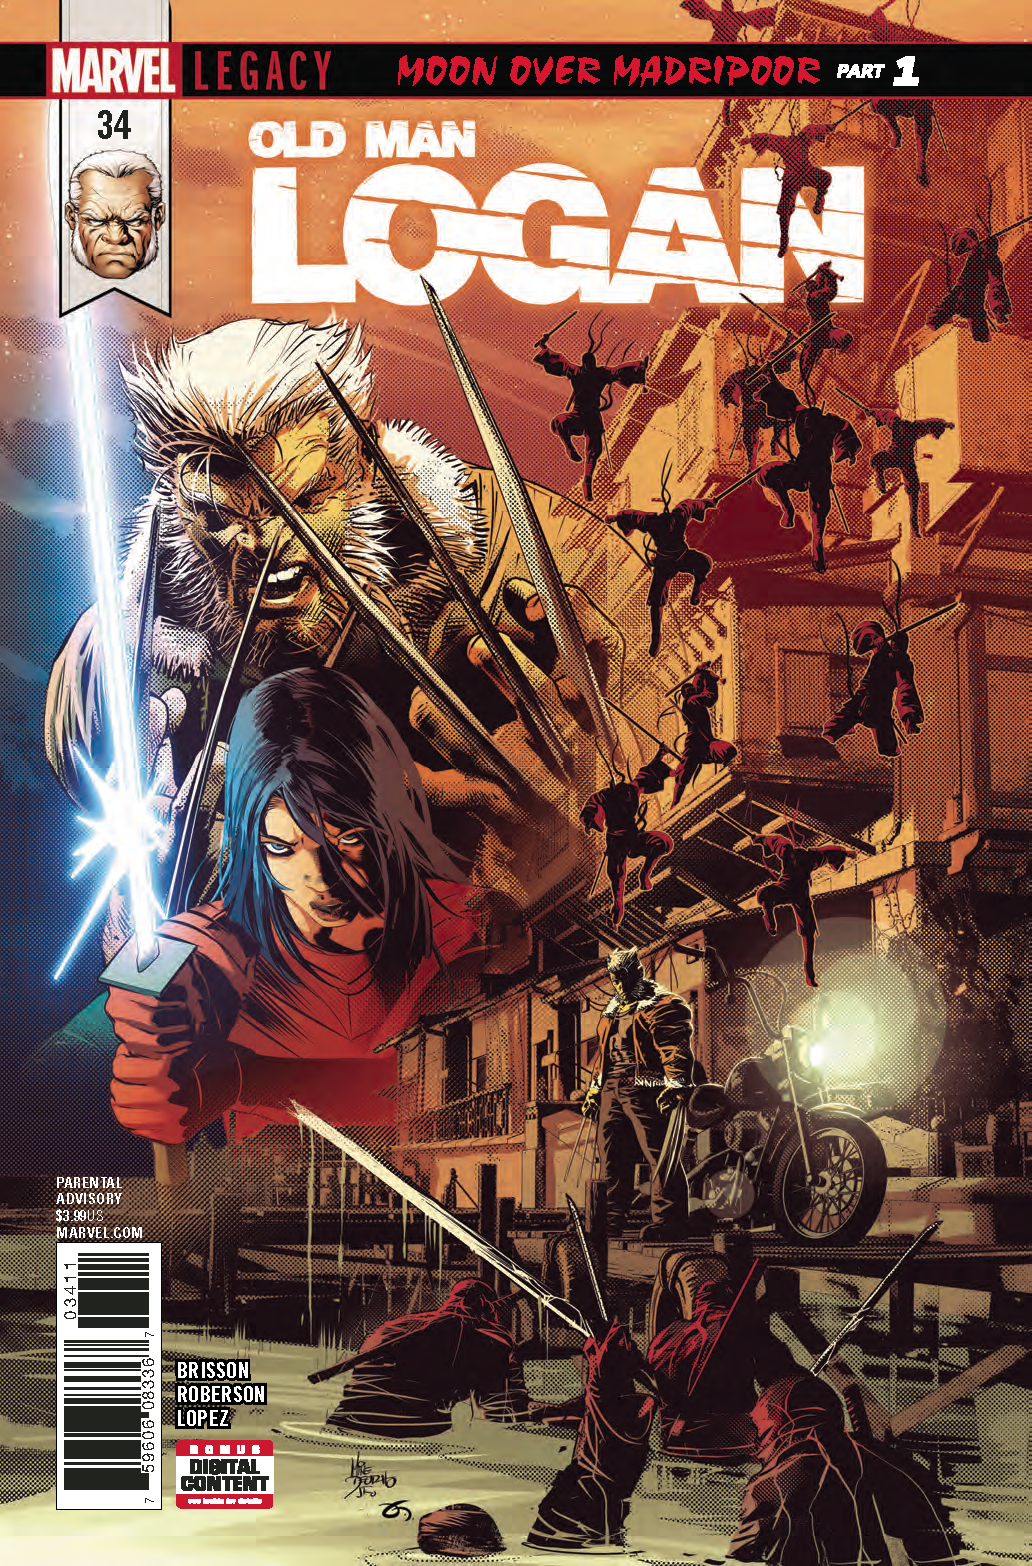 OLD MAN LOGAN #34 LEG